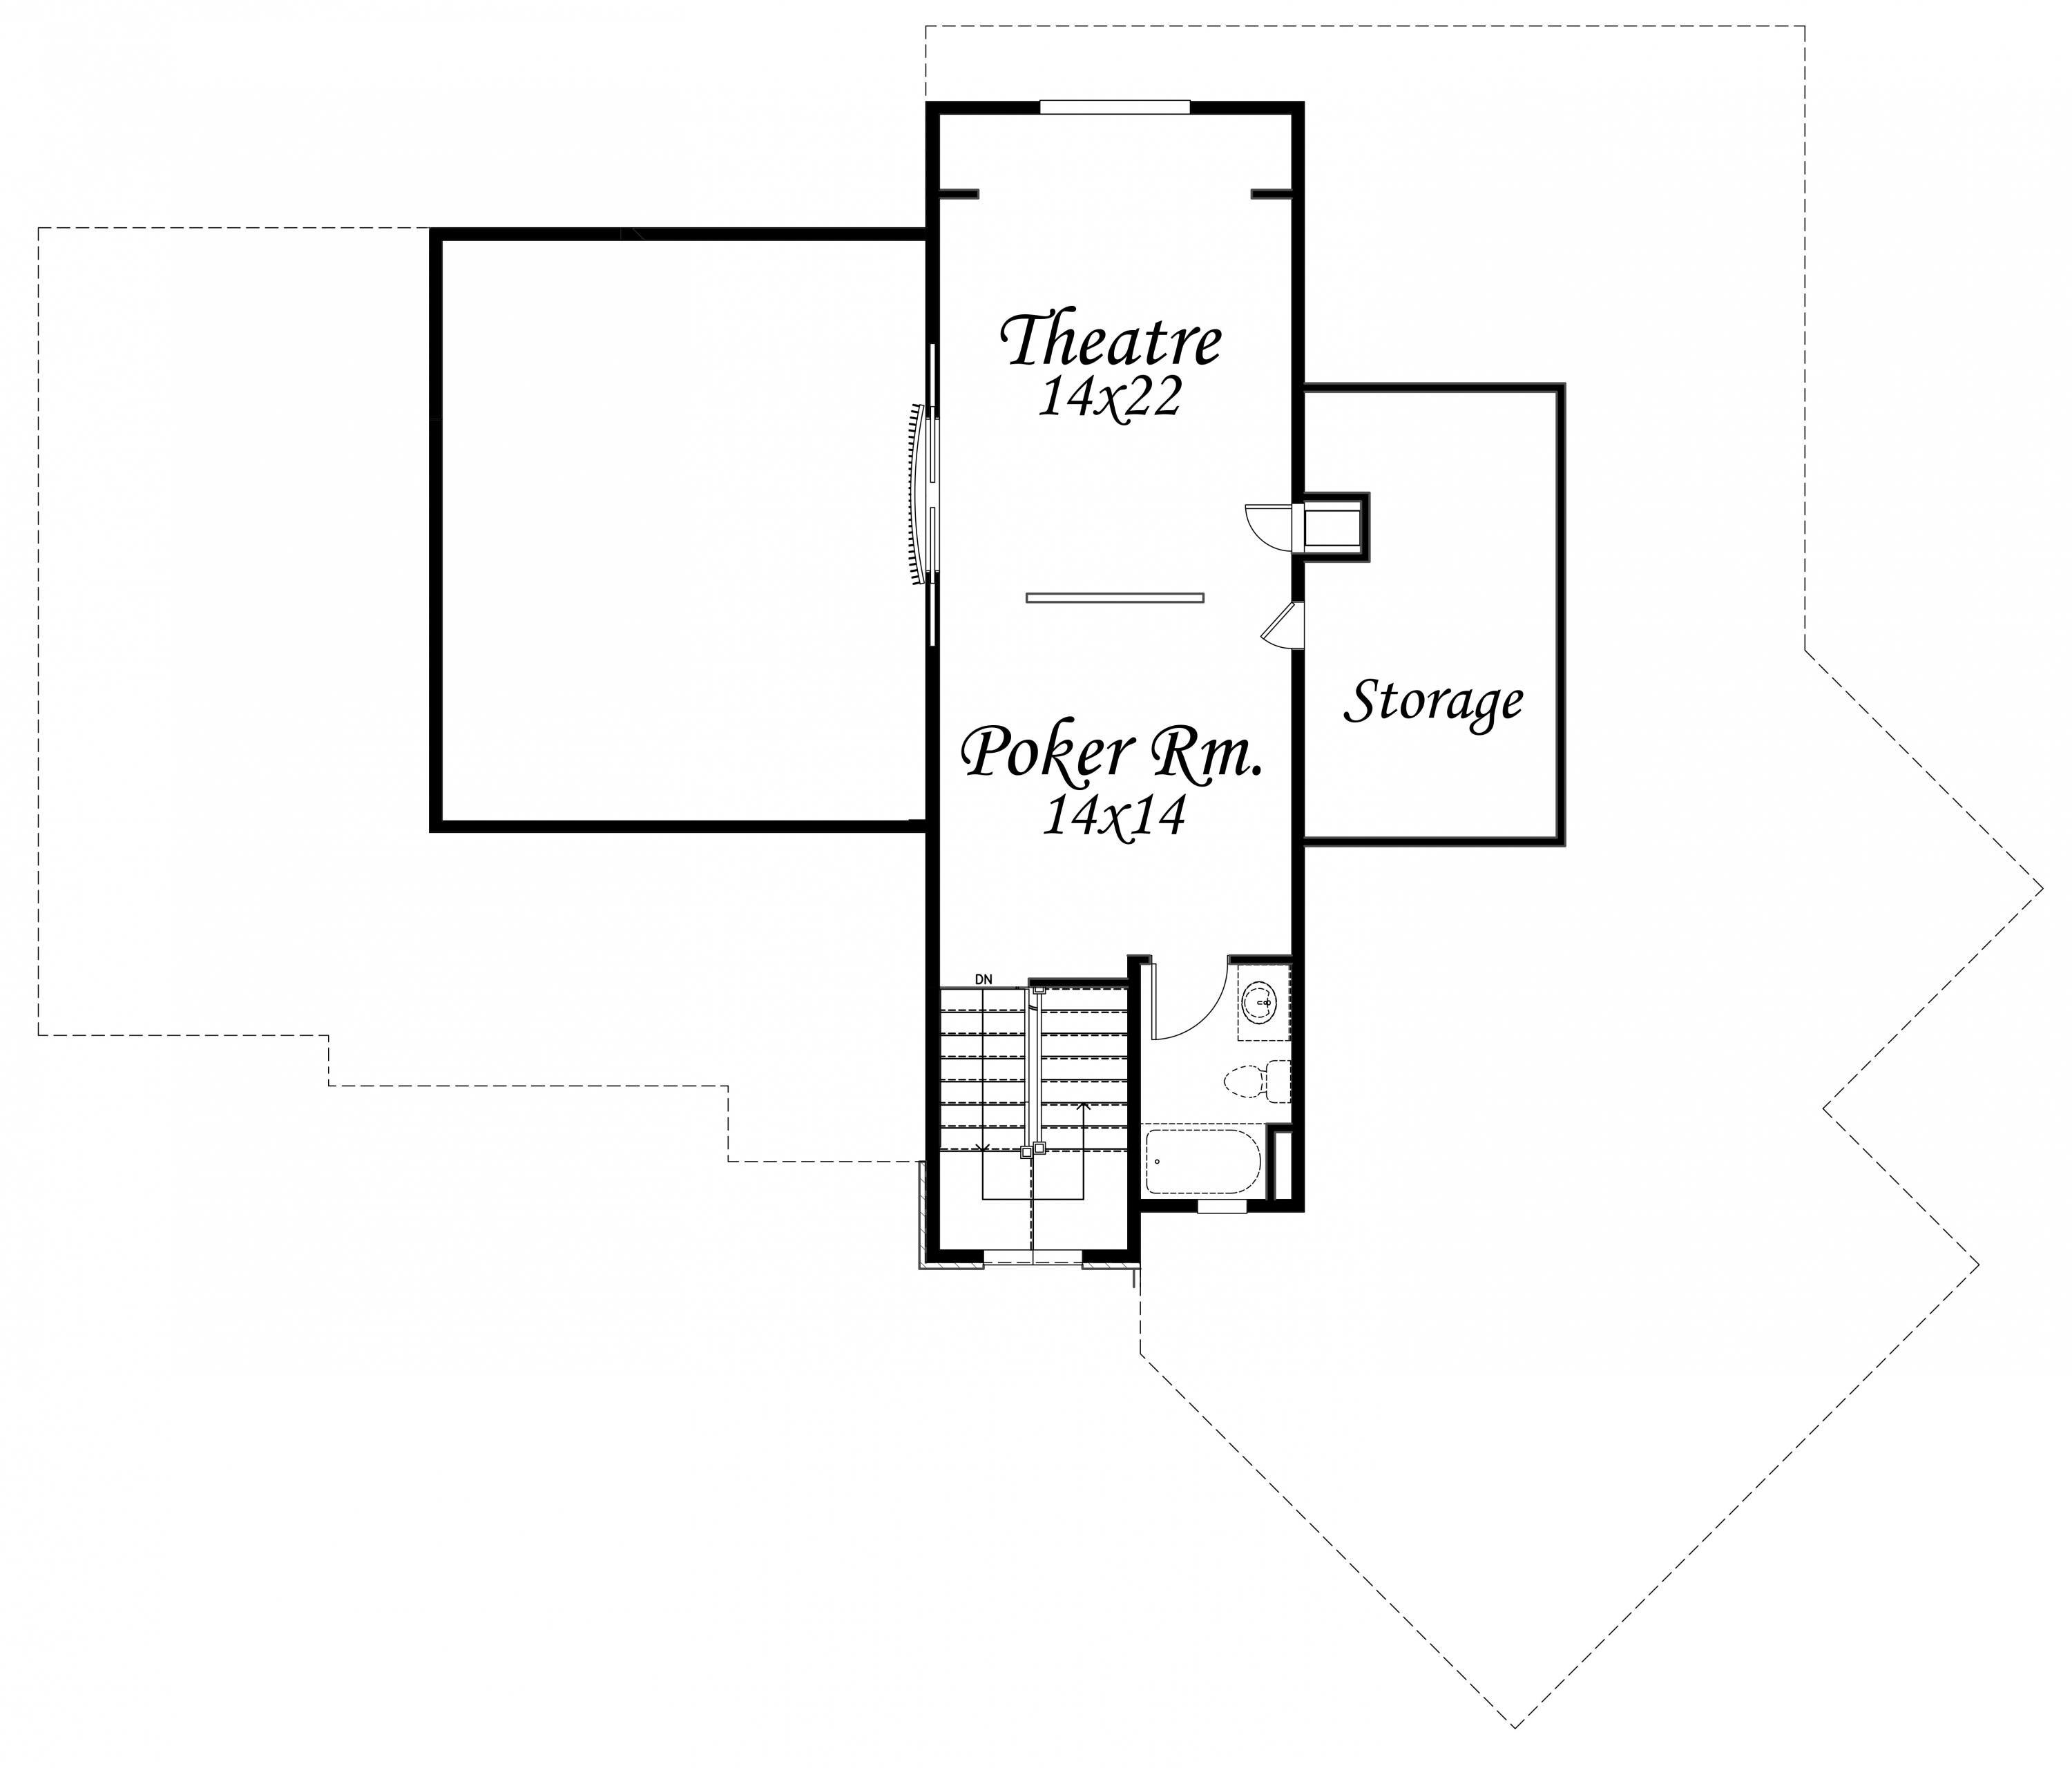 901du7 additionally My House Floor Plan besides Craftsman Style Homes Plans Best Of Baby Nursery Ranch House Plans With Covered Porch Home Design additionally Building Plans moreover 1066co2. on easybuildingplans